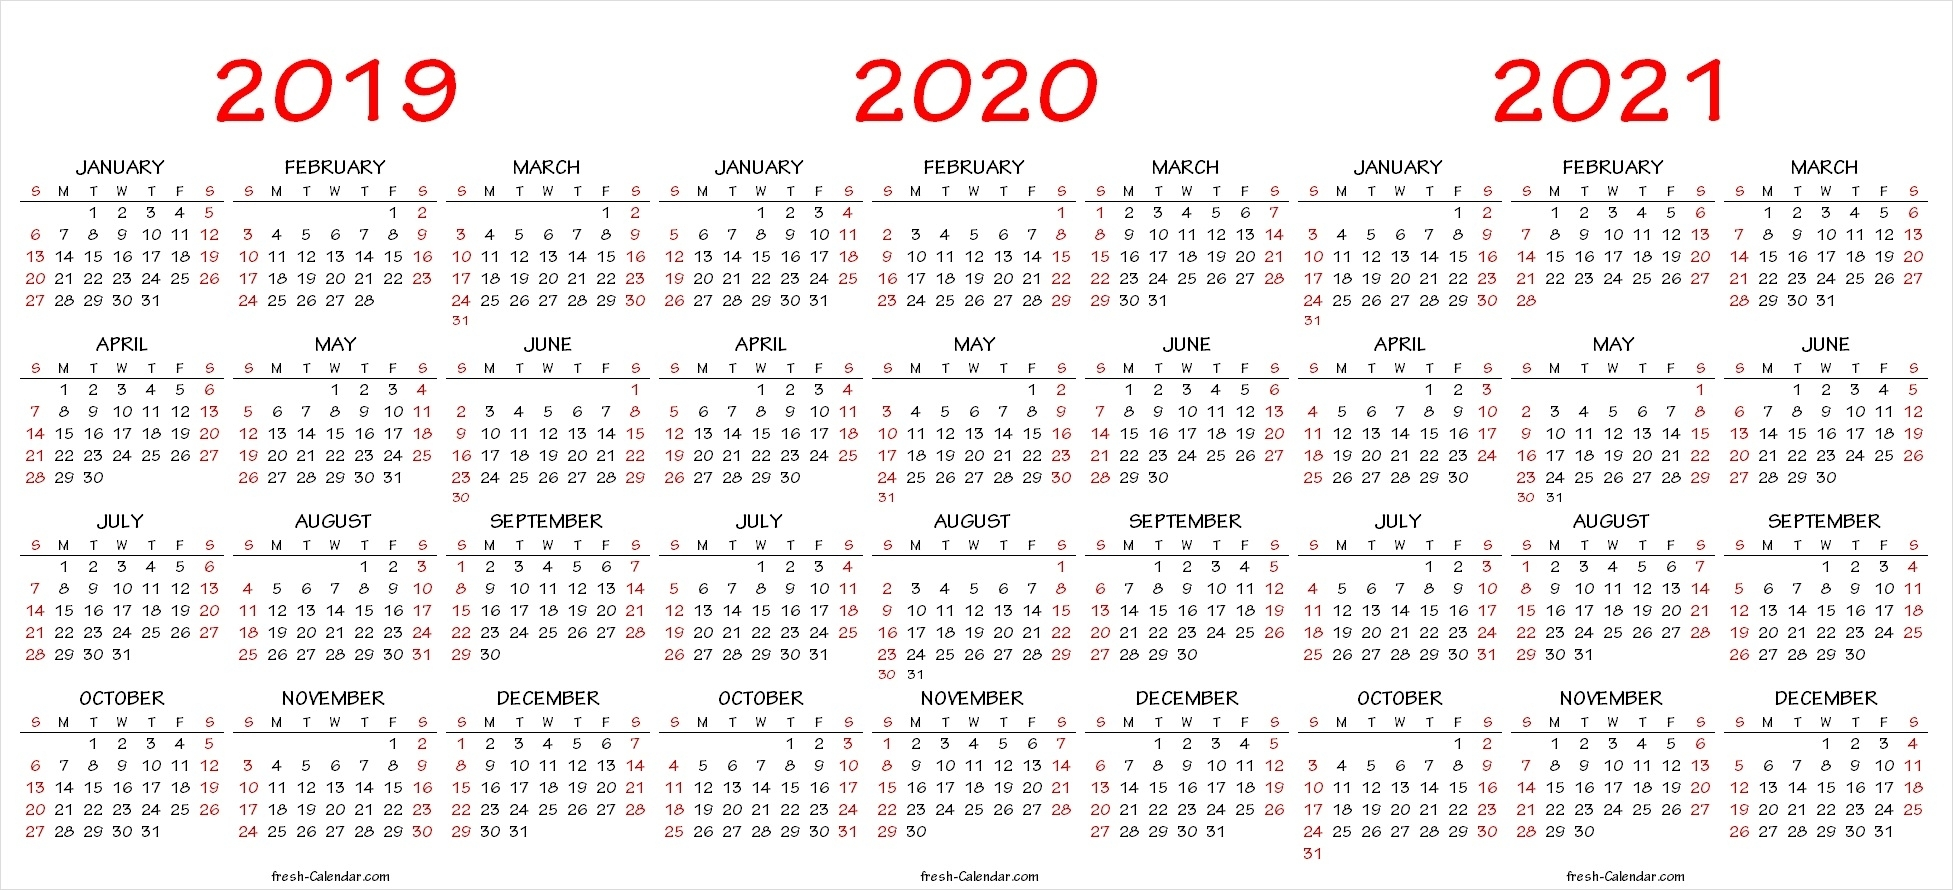 Three Yearly Calendar 2019 2020 2021 Printable Free | Blank Template intended for 3 Year Calendar 2019 2020 2021